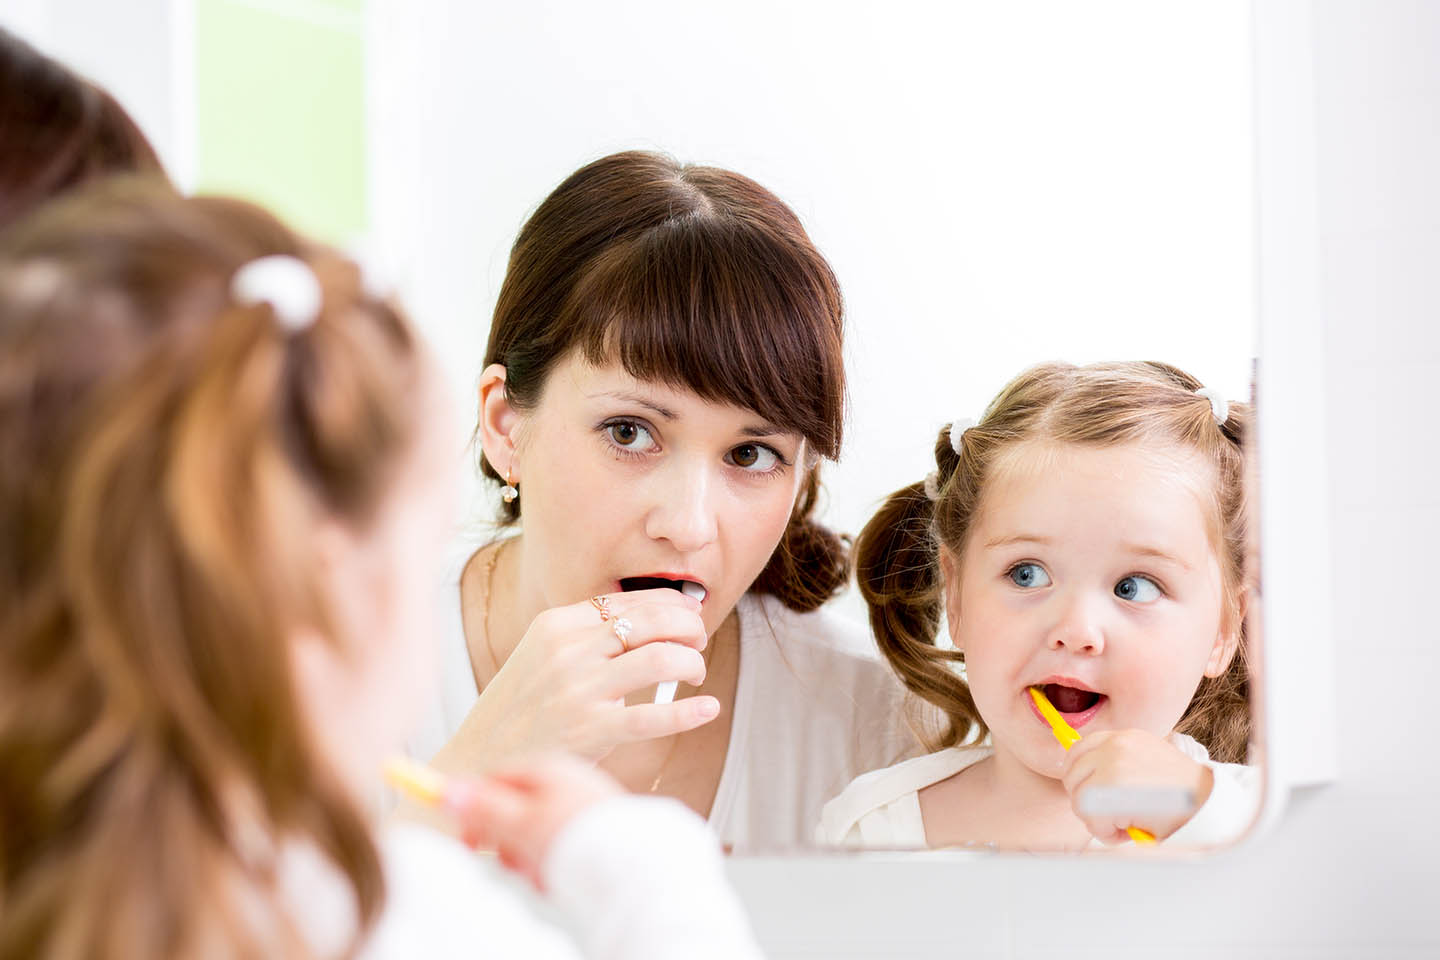 A family practicing brushing teeth